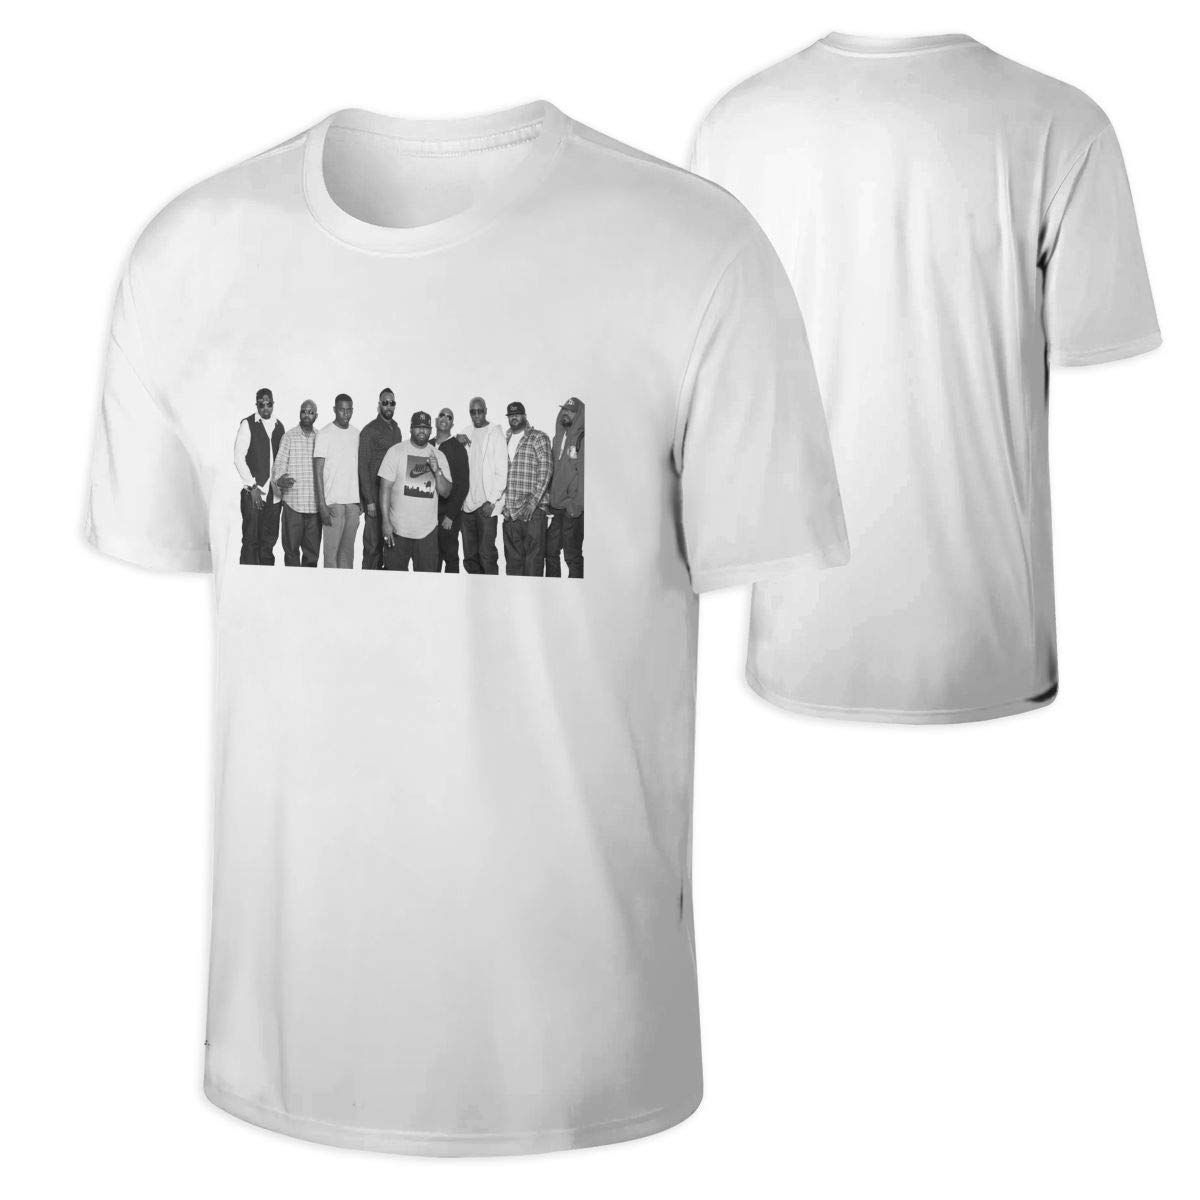 Wu Tang Clan Short Sleeve Crewneck Soft And Comfortable 3040 Shirts